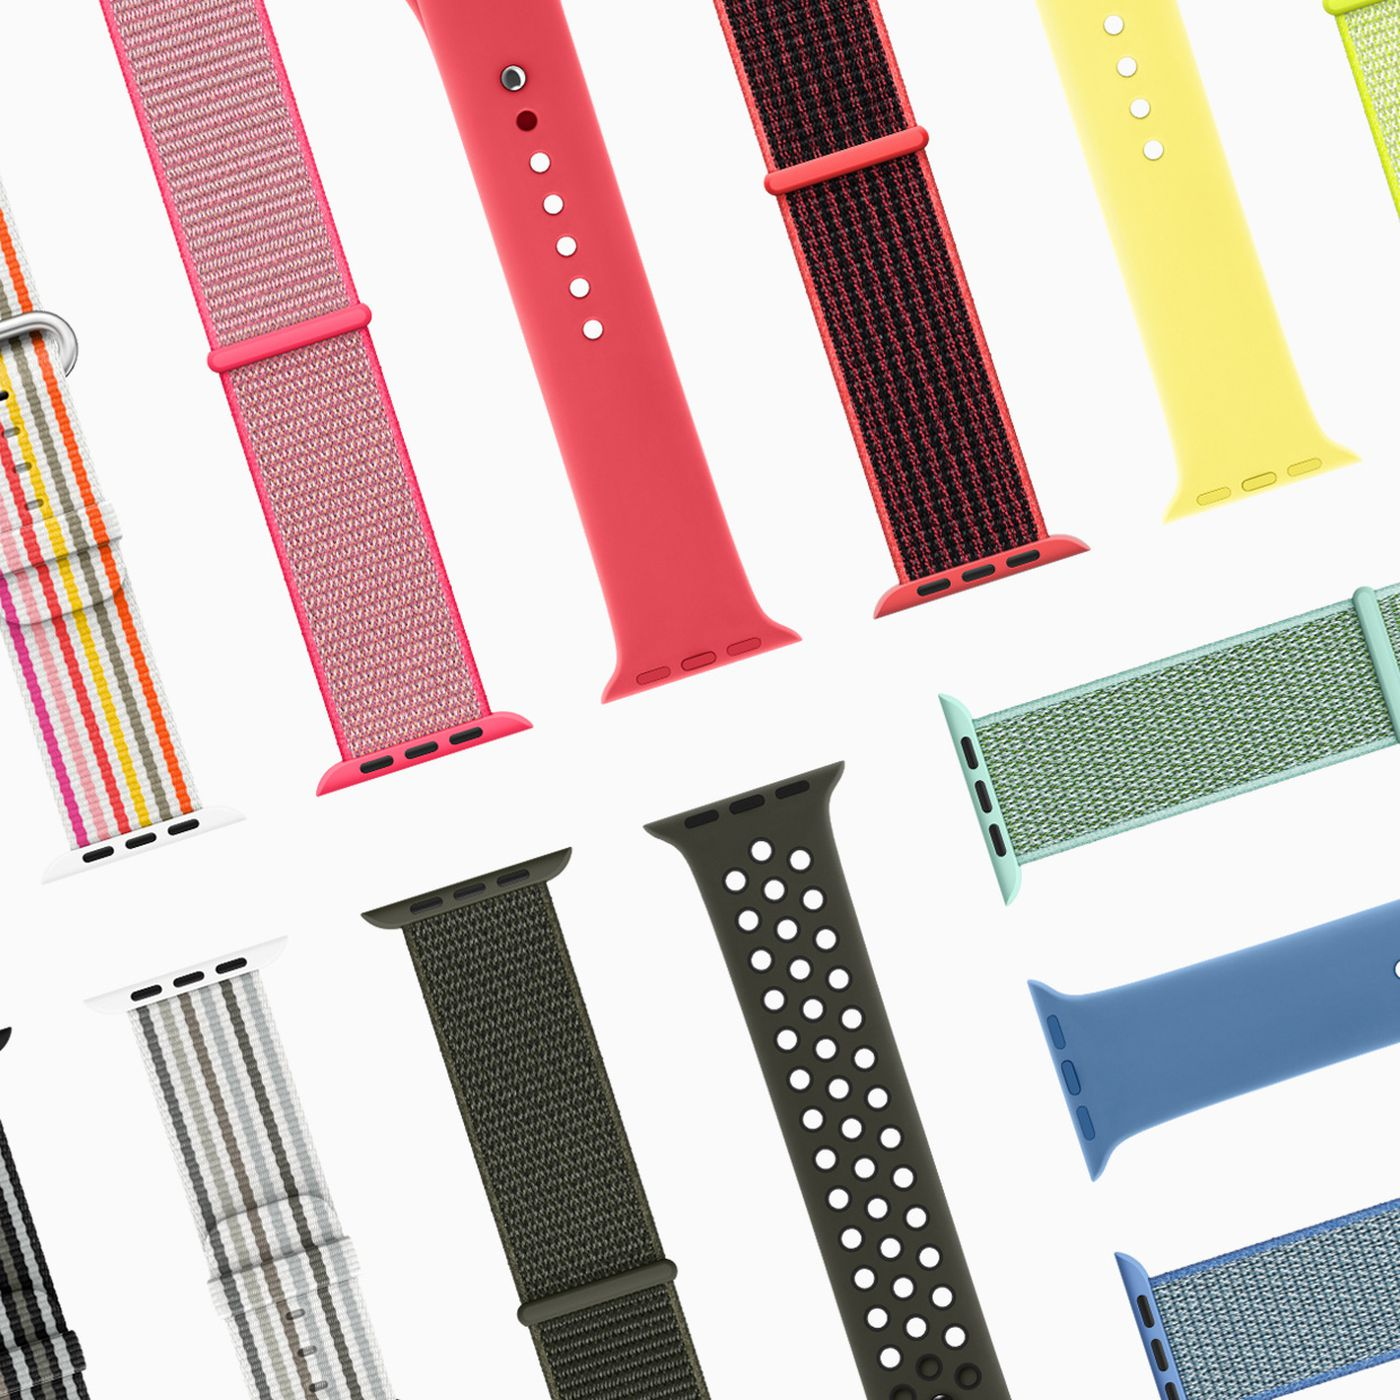 Apple will sell its Nike Sport Loop Apple Watch band